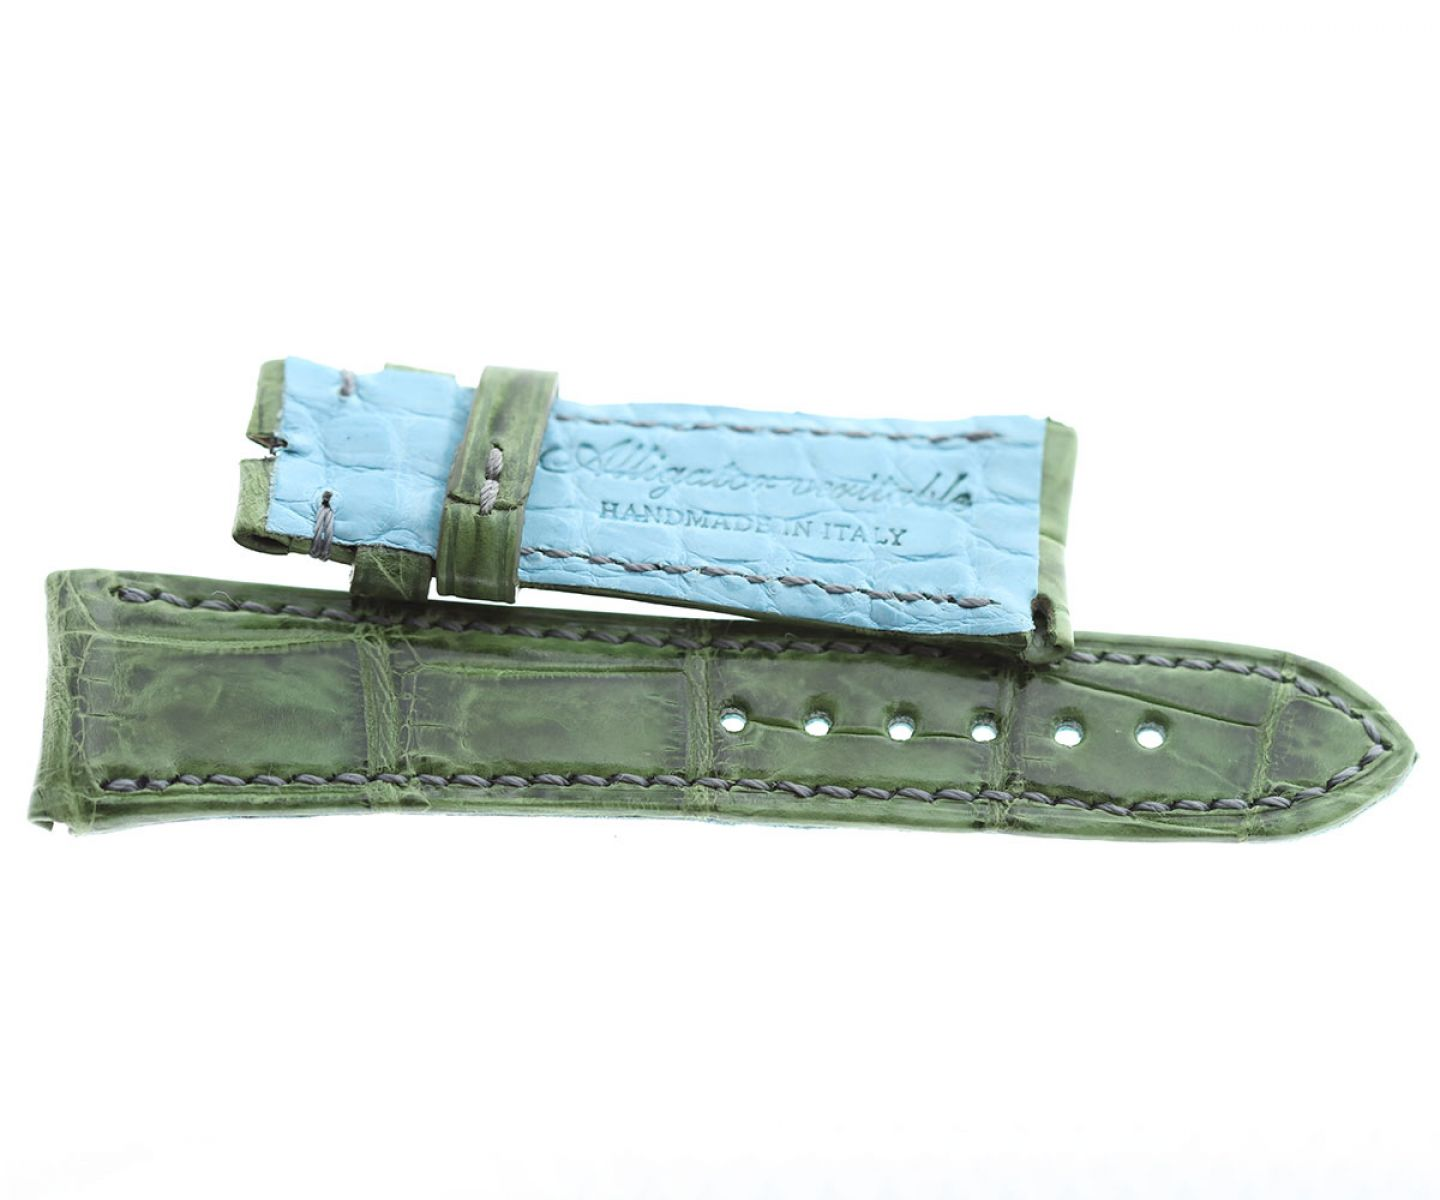 Rolex Cellini Dual / Time / Date Custom made strap in Vintage Green Alligator leather